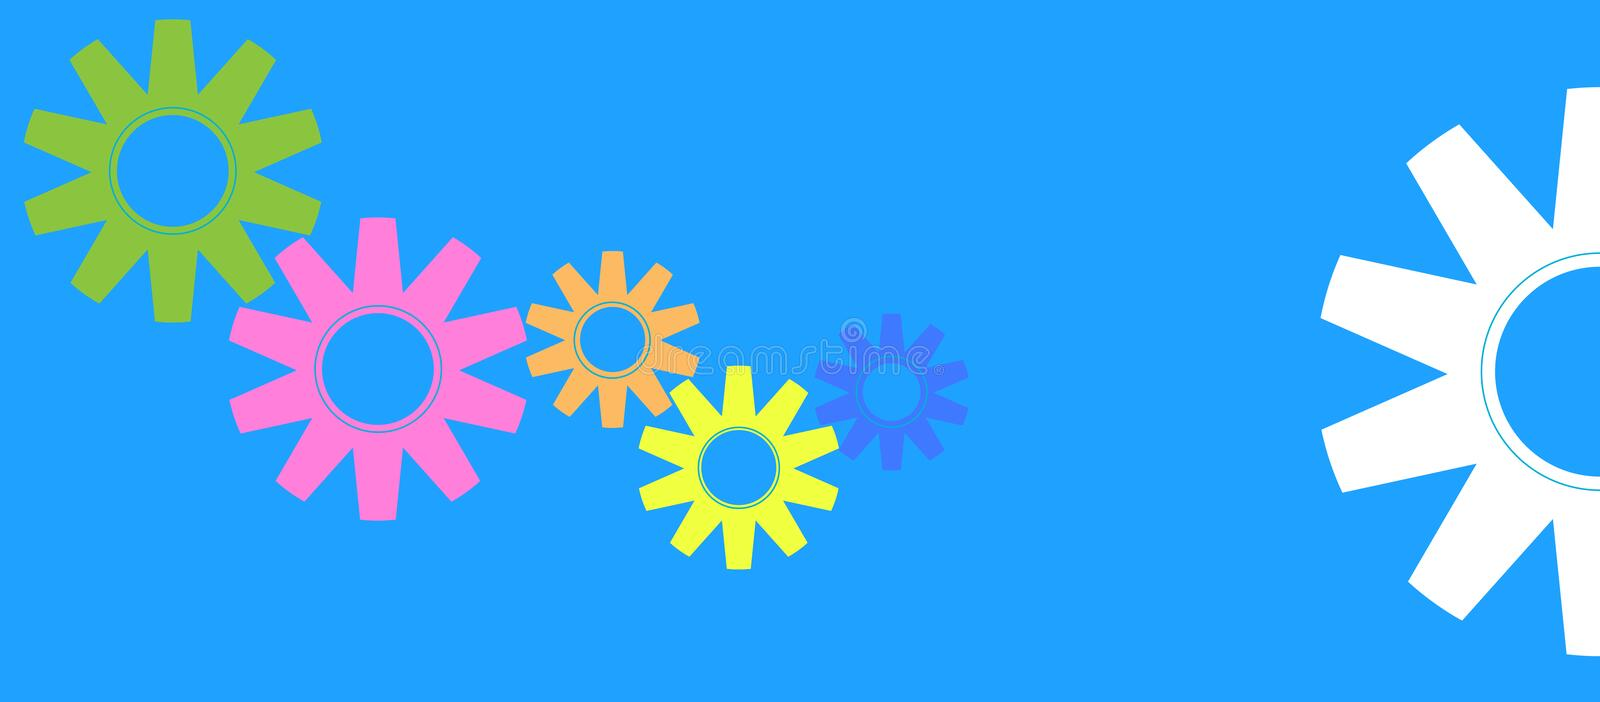 Download Colorful gears stock illustration. Image of illustration - 13174324